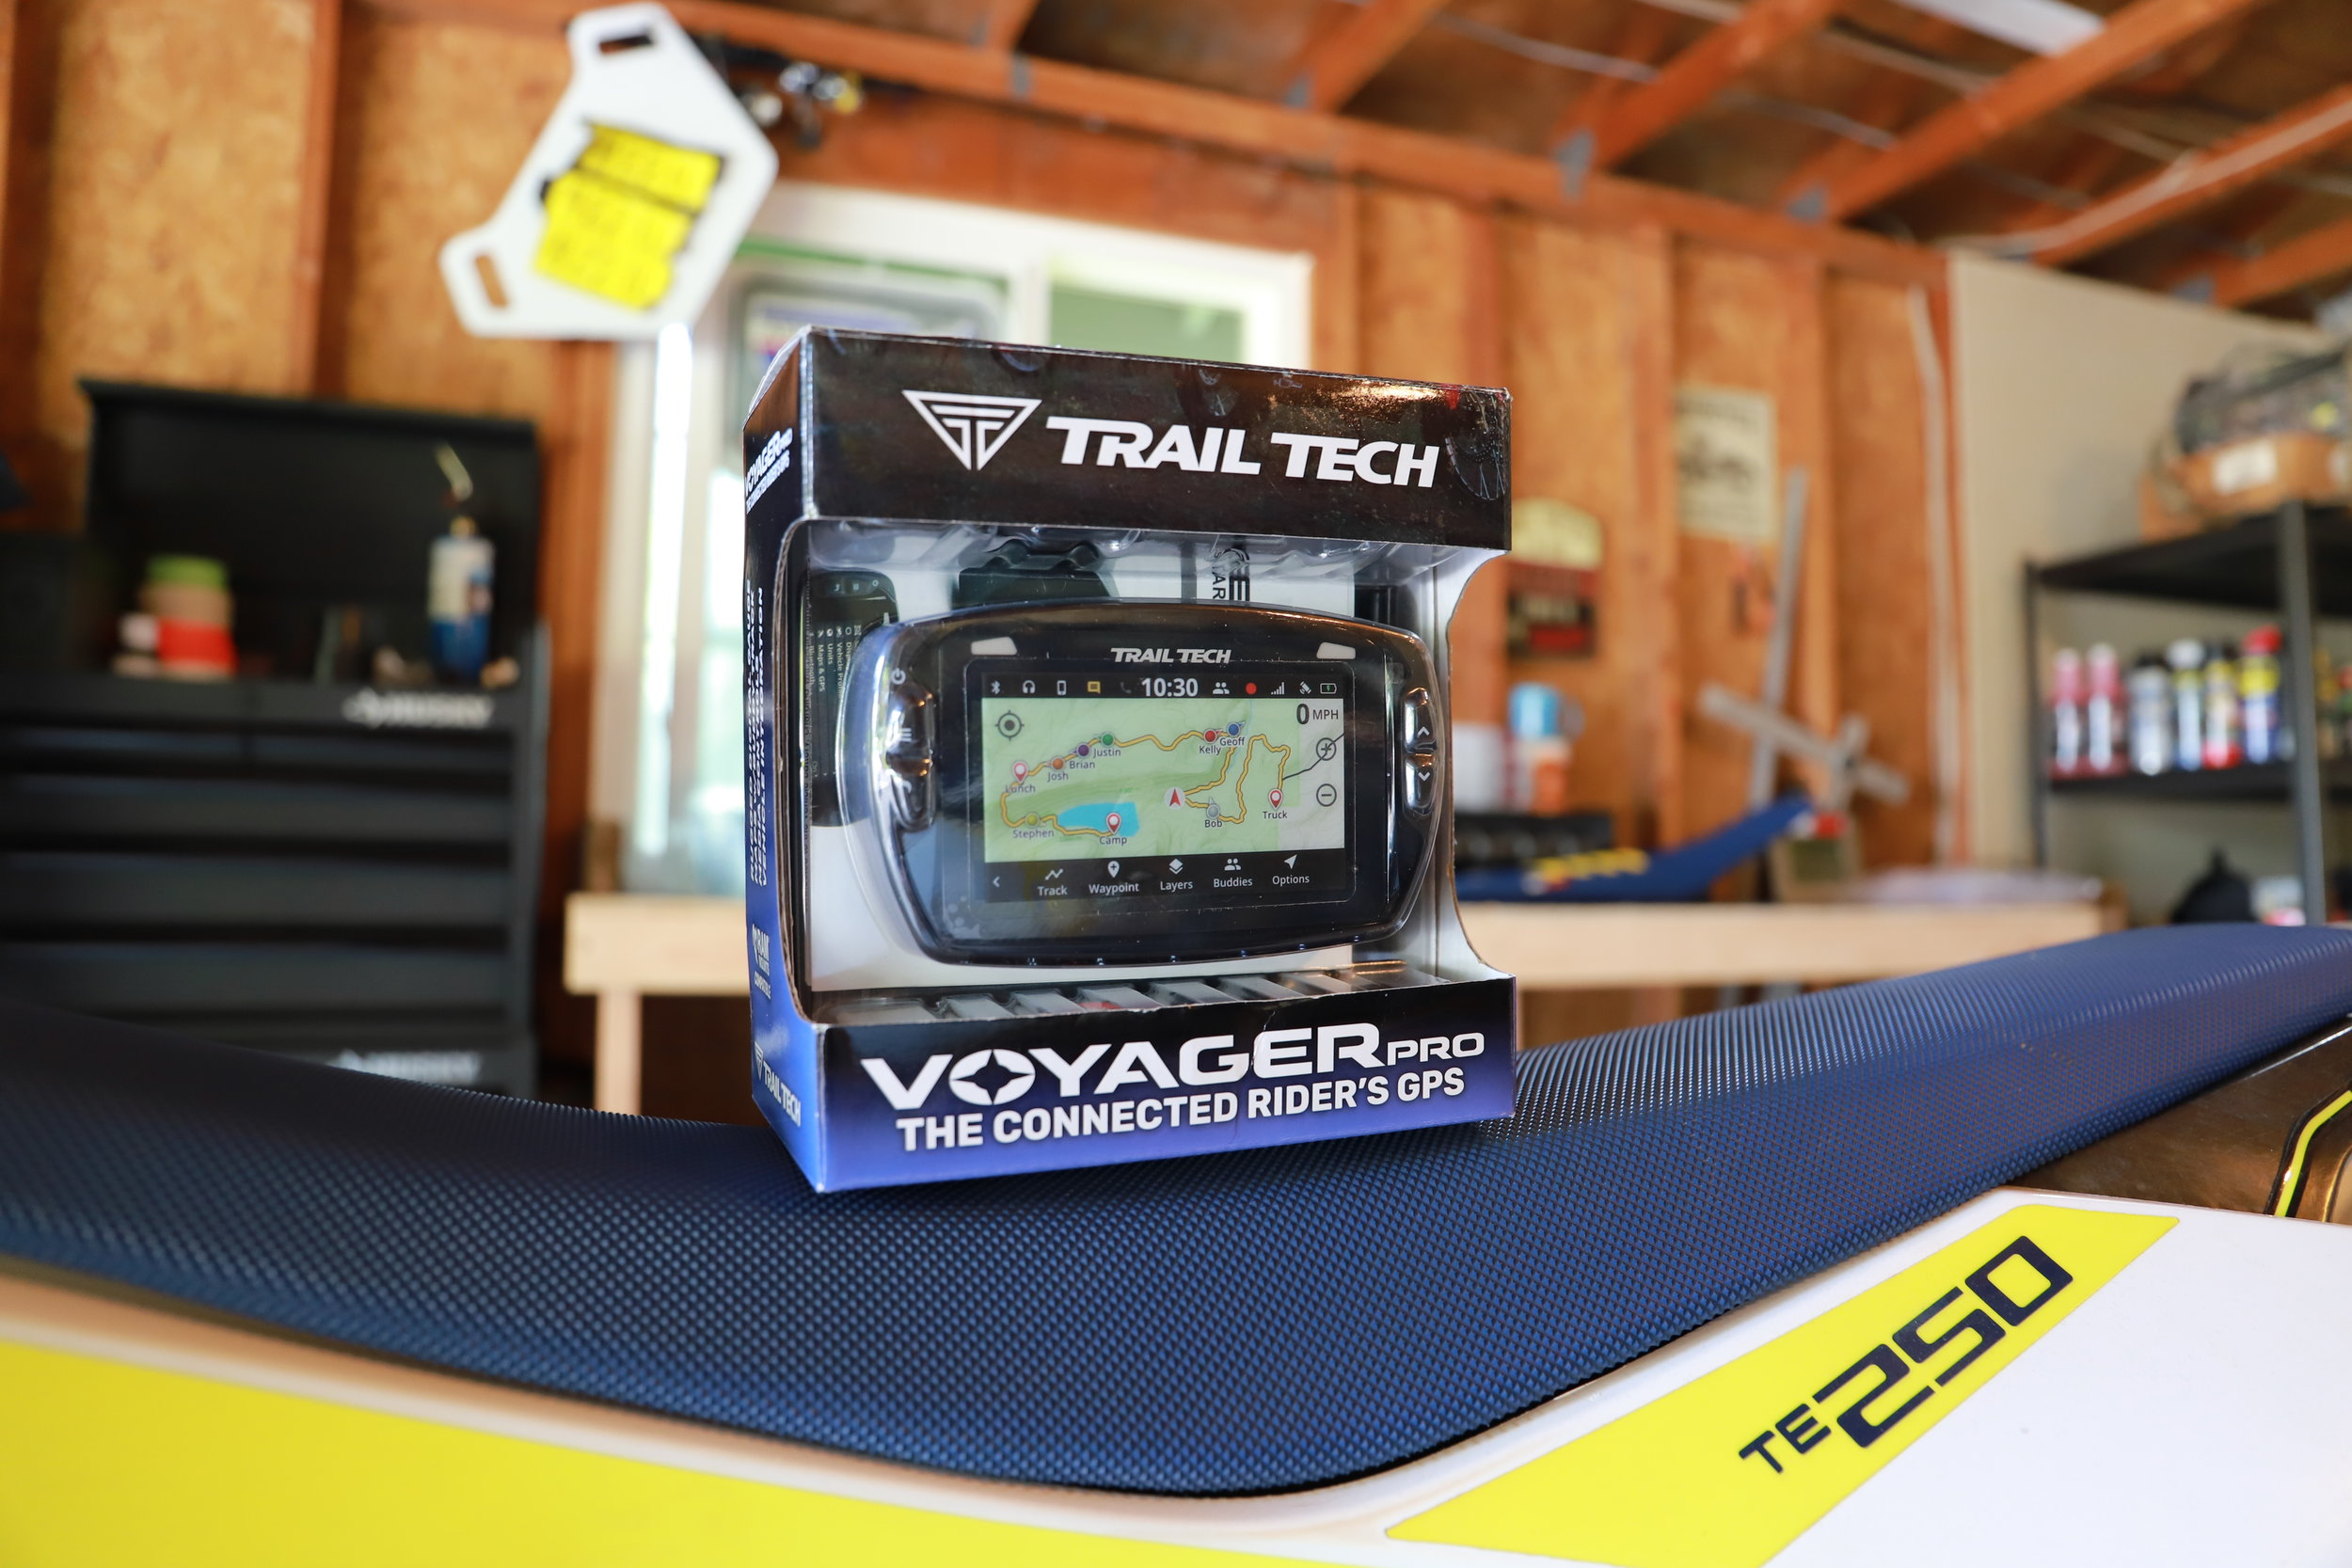 Trail Tech Voyager Pro just itching to be installed.